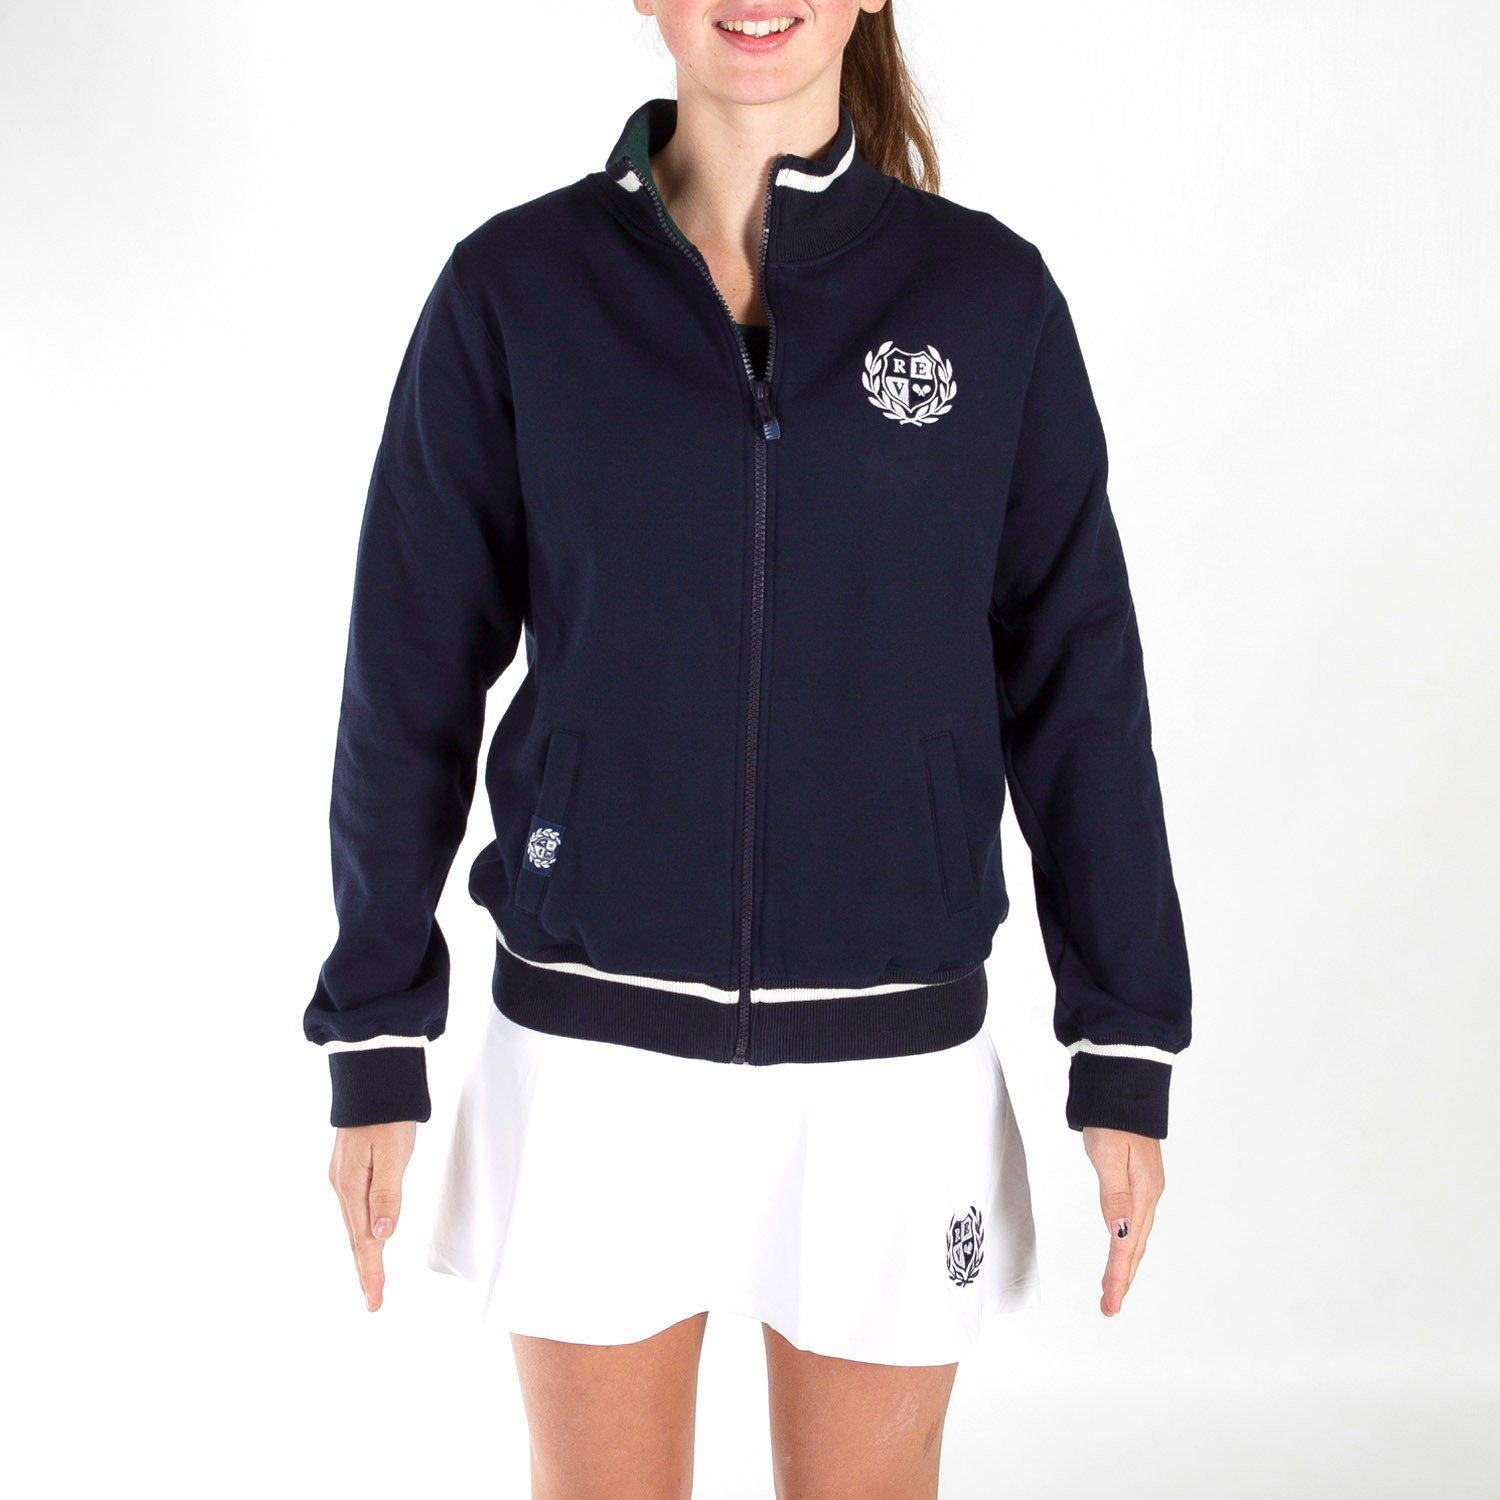 PADEL REVOLUTION - Sudadera Woman 1&2International, Color Azul ...